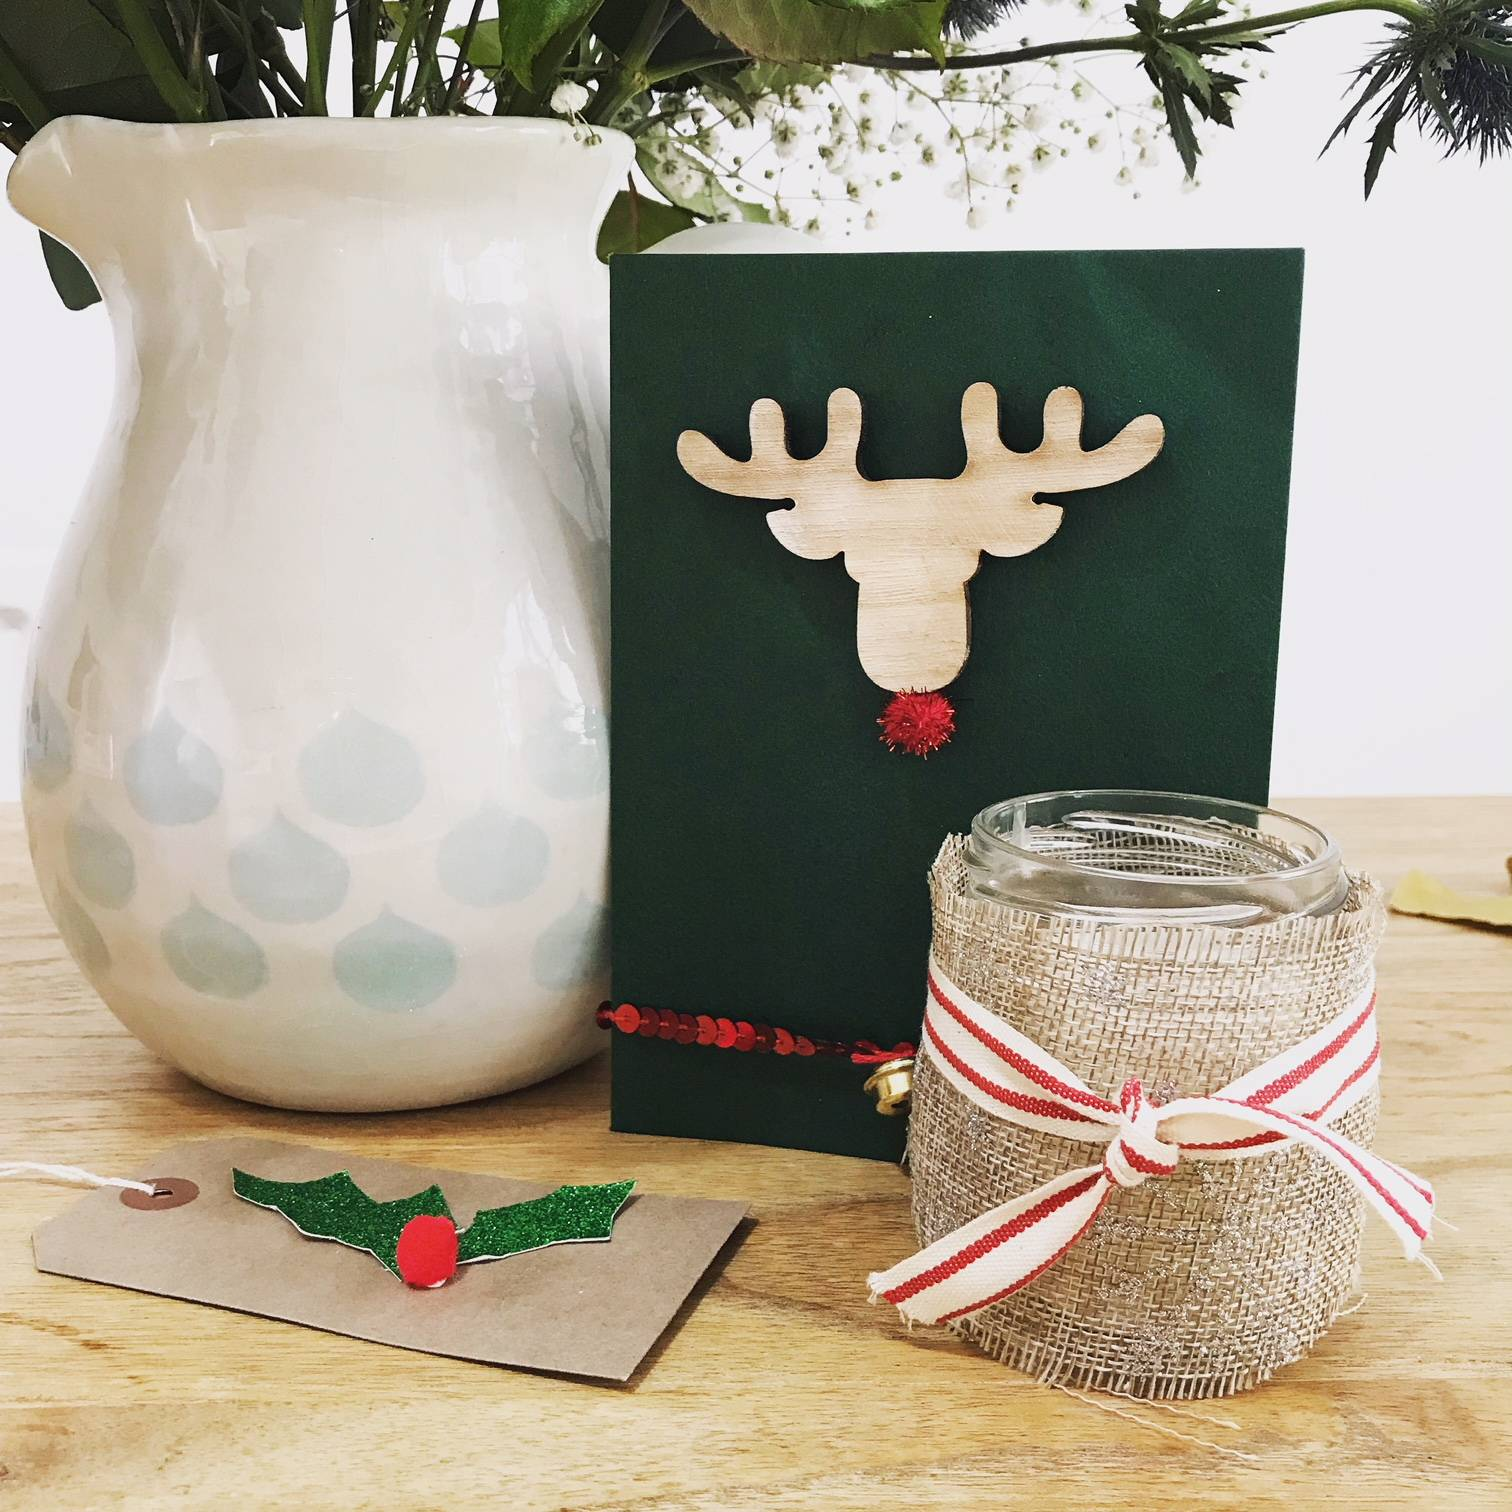 Simple Christmas Crafting